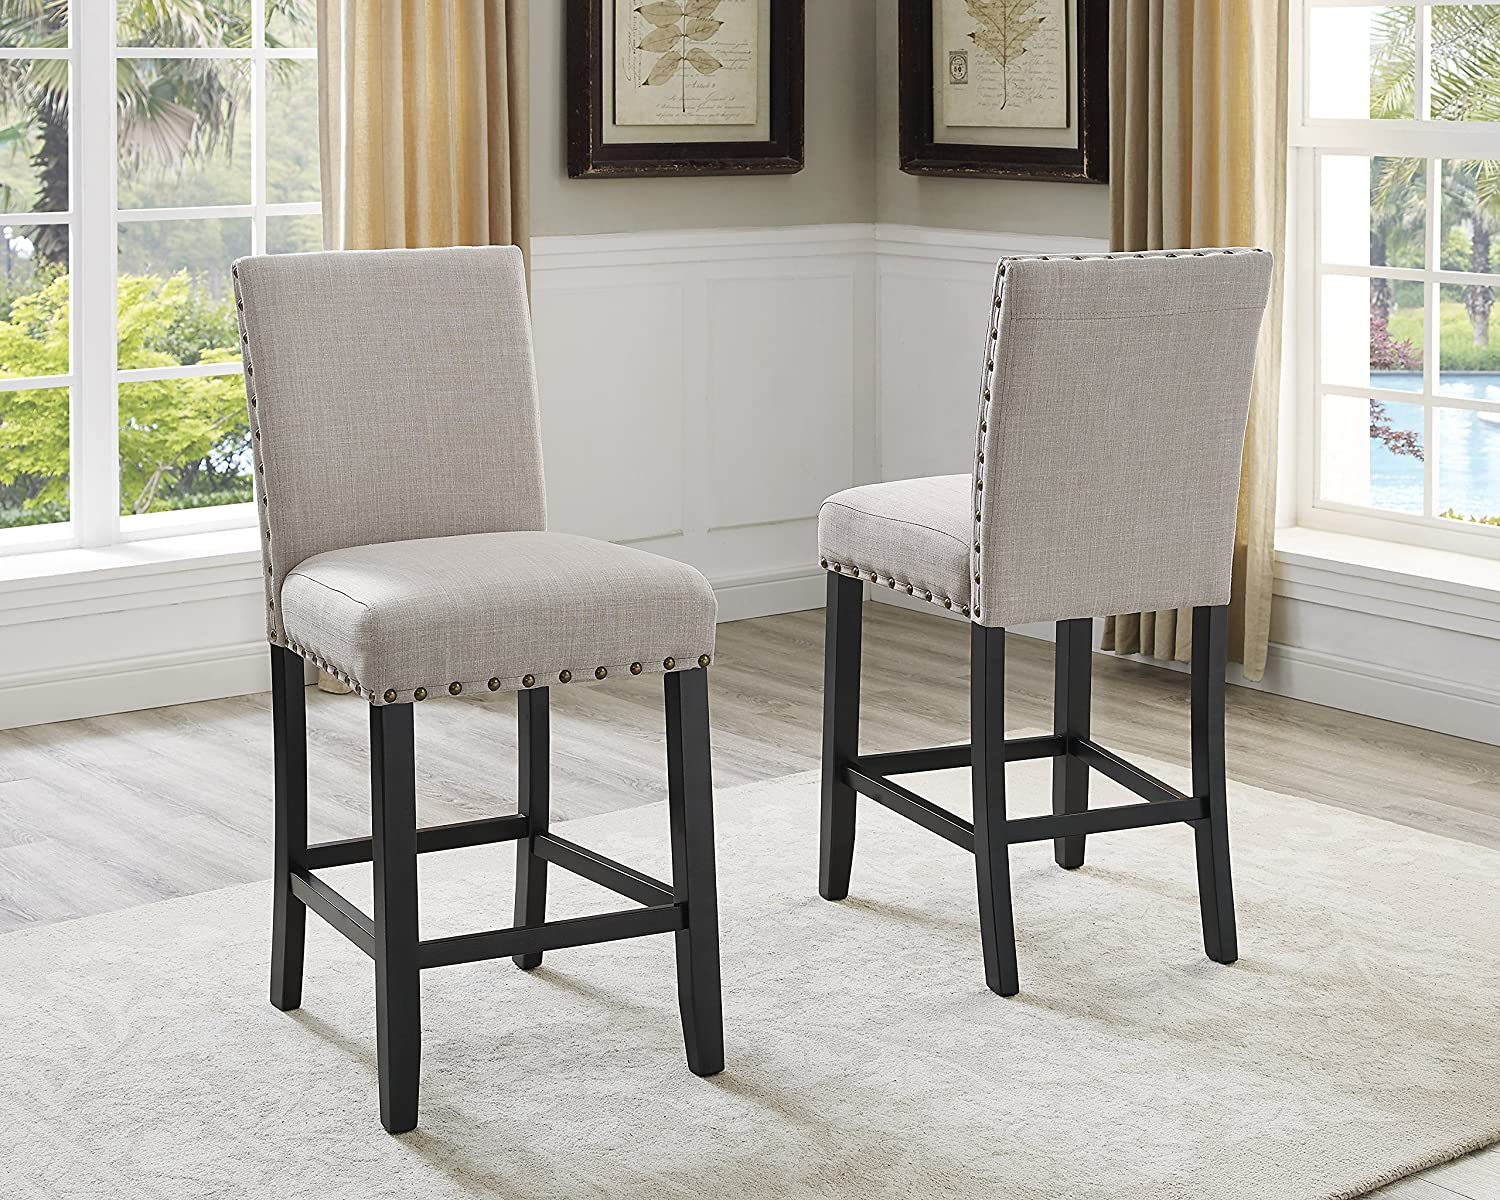 Groovy Biony Tan Fabric Counter Height Stools With Nailhead Trim Set Of 2 Ncnpc Chair Design For Home Ncnpcorg